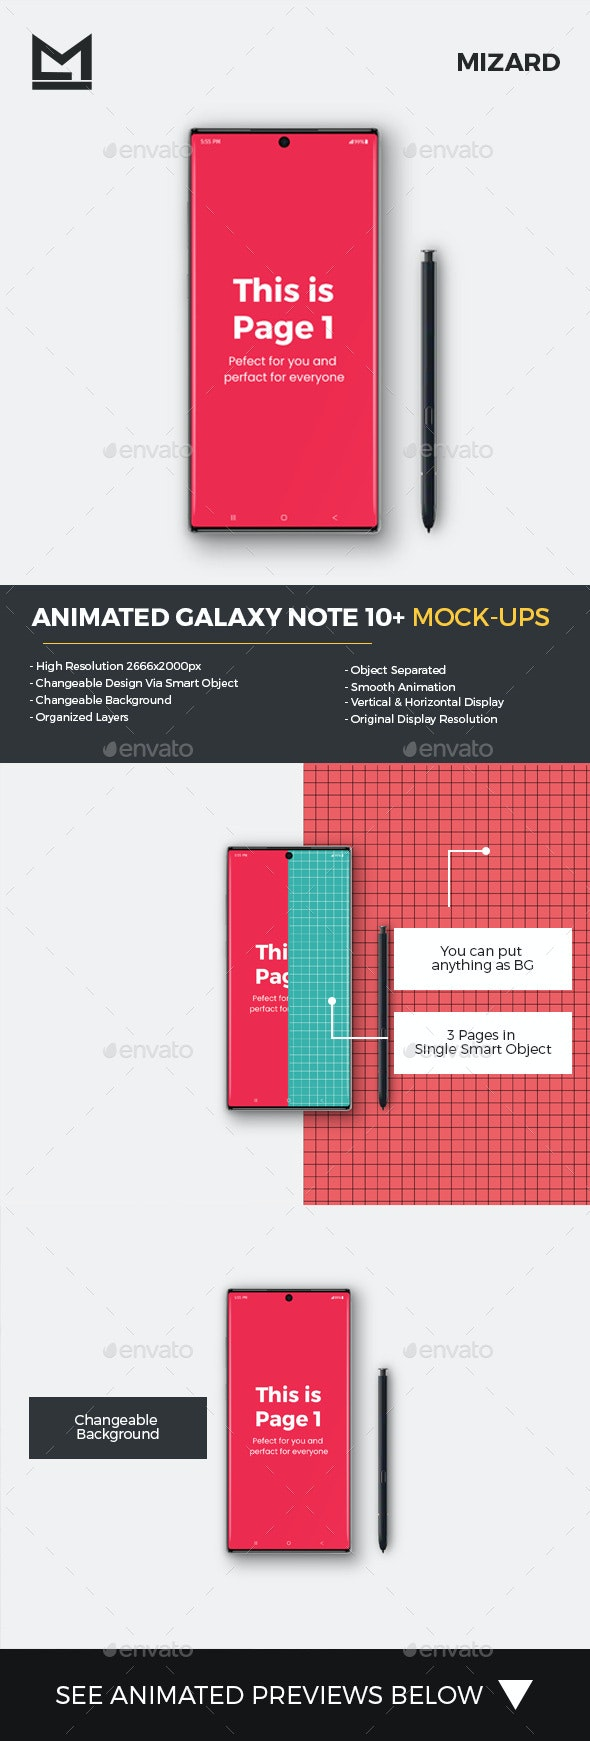 Animated Galaxy Note 10+ Mockup - Mobile Displays